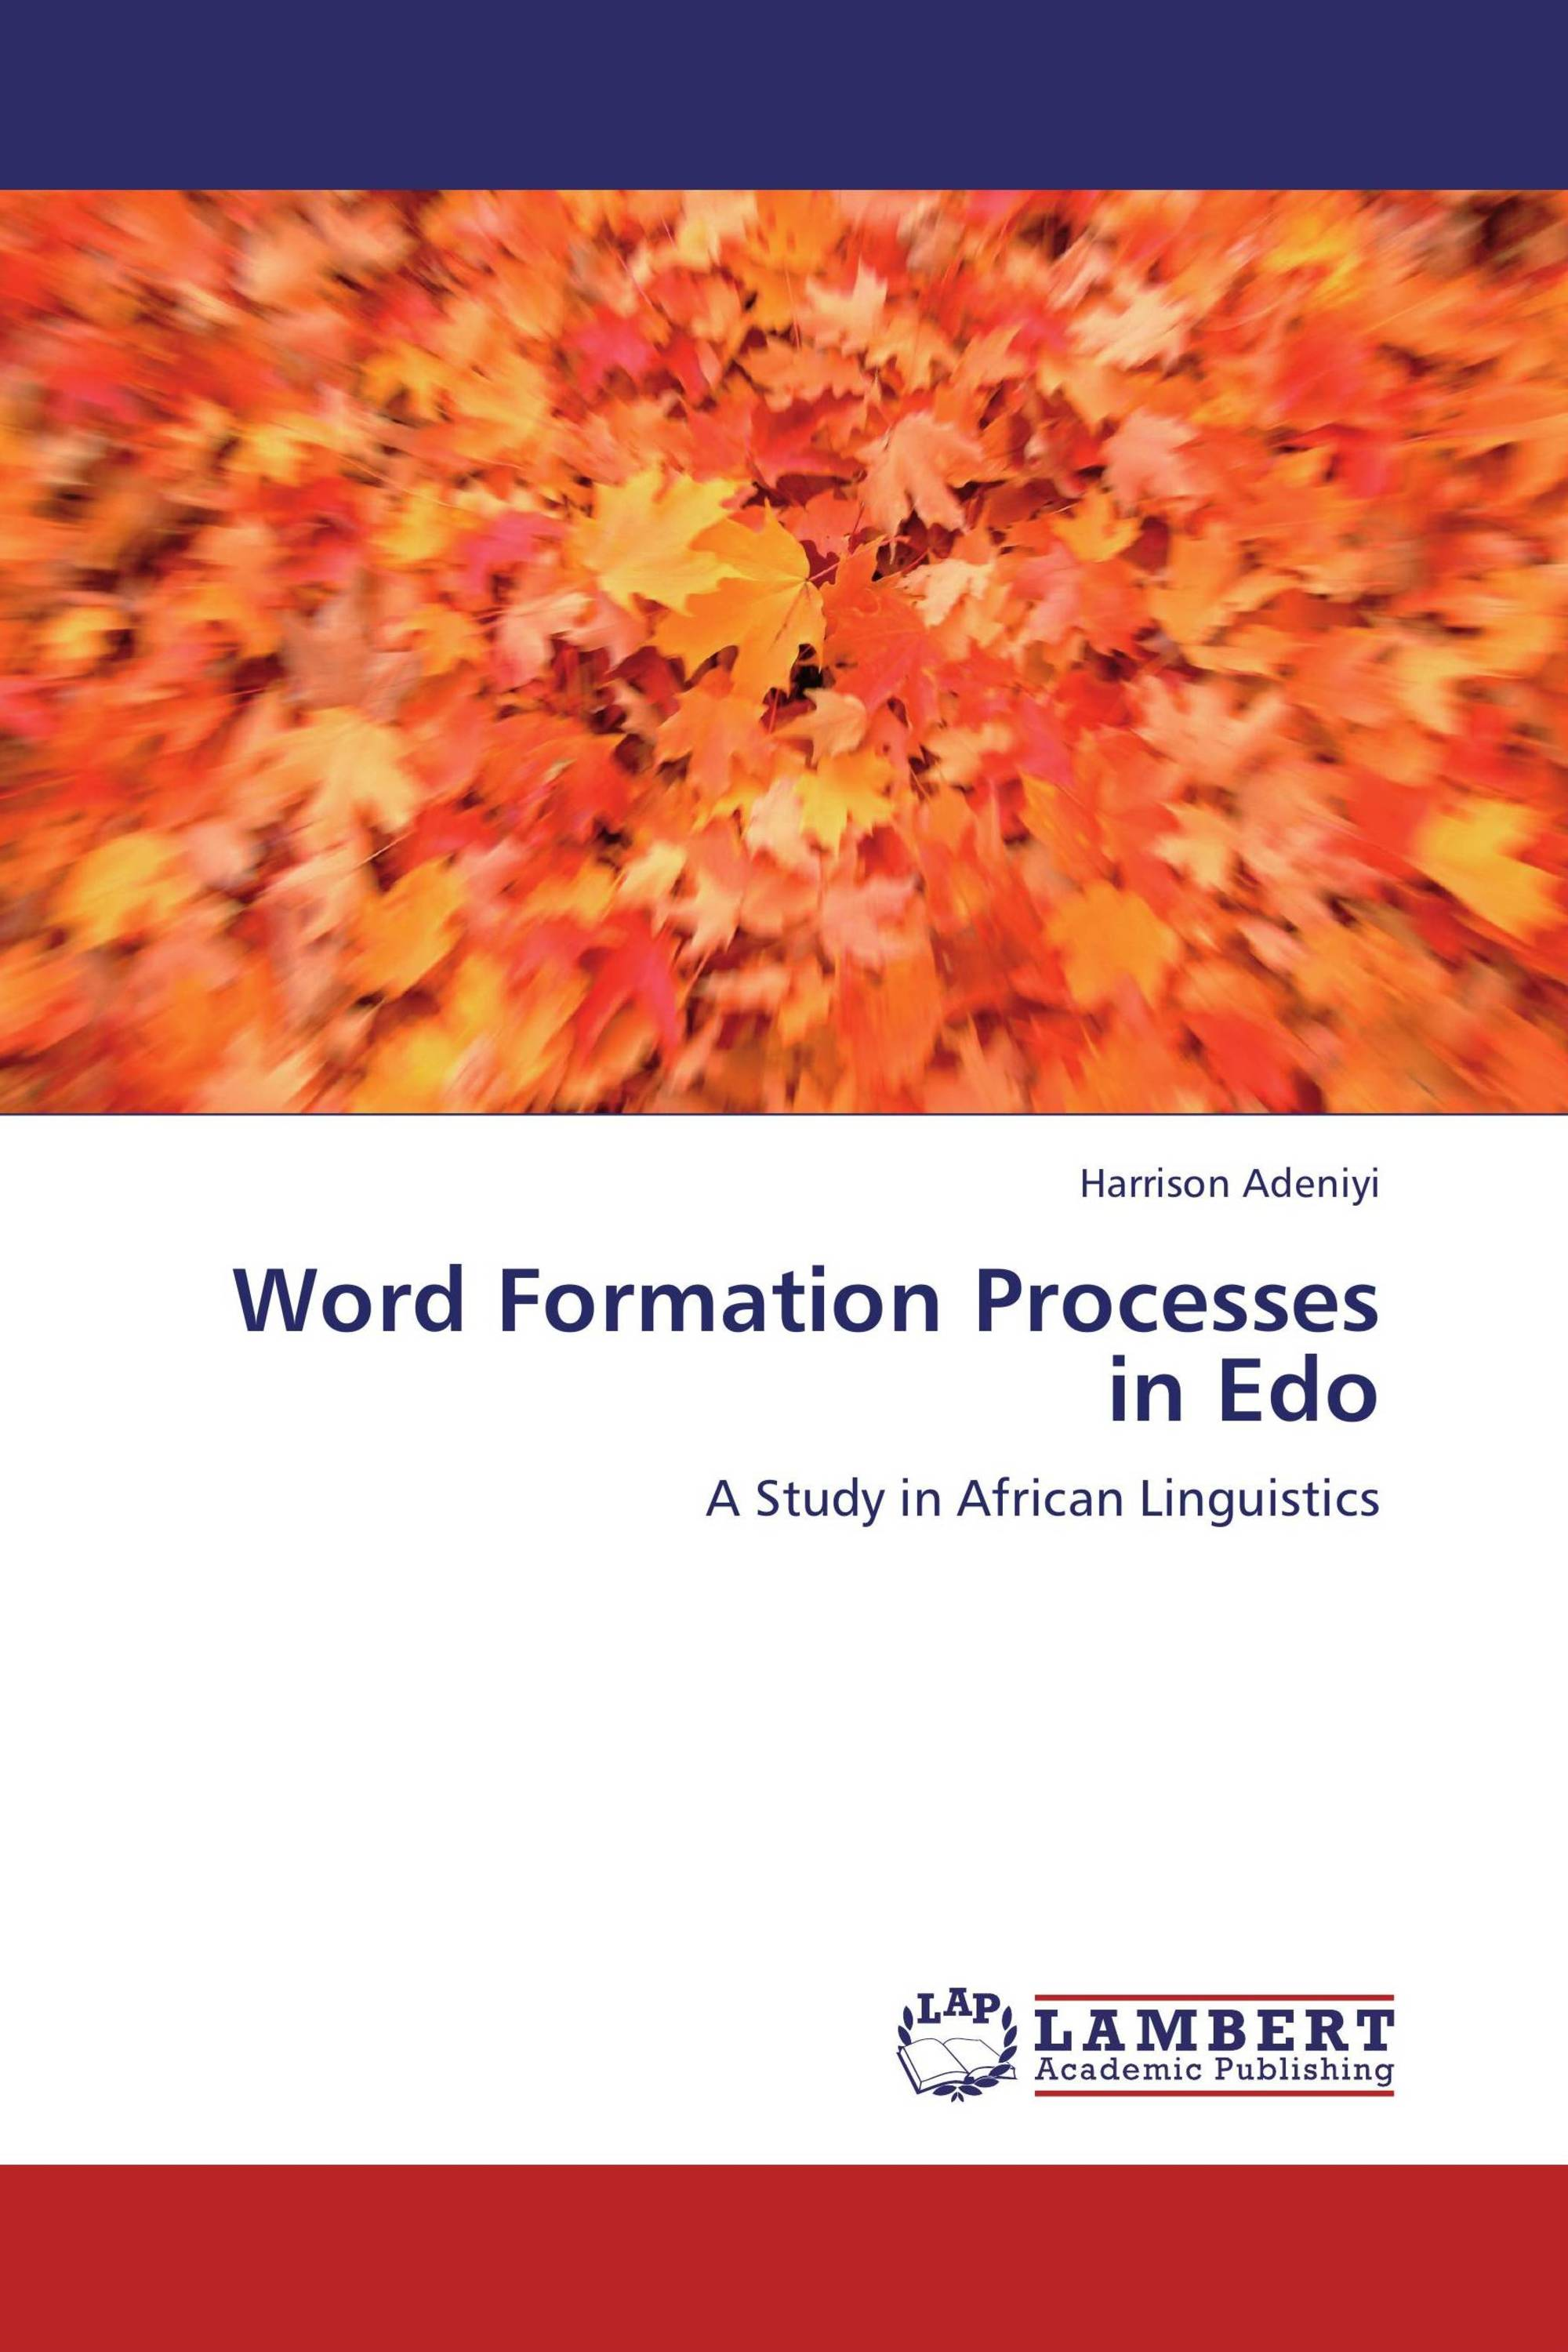 Word Formation Processes in Edo